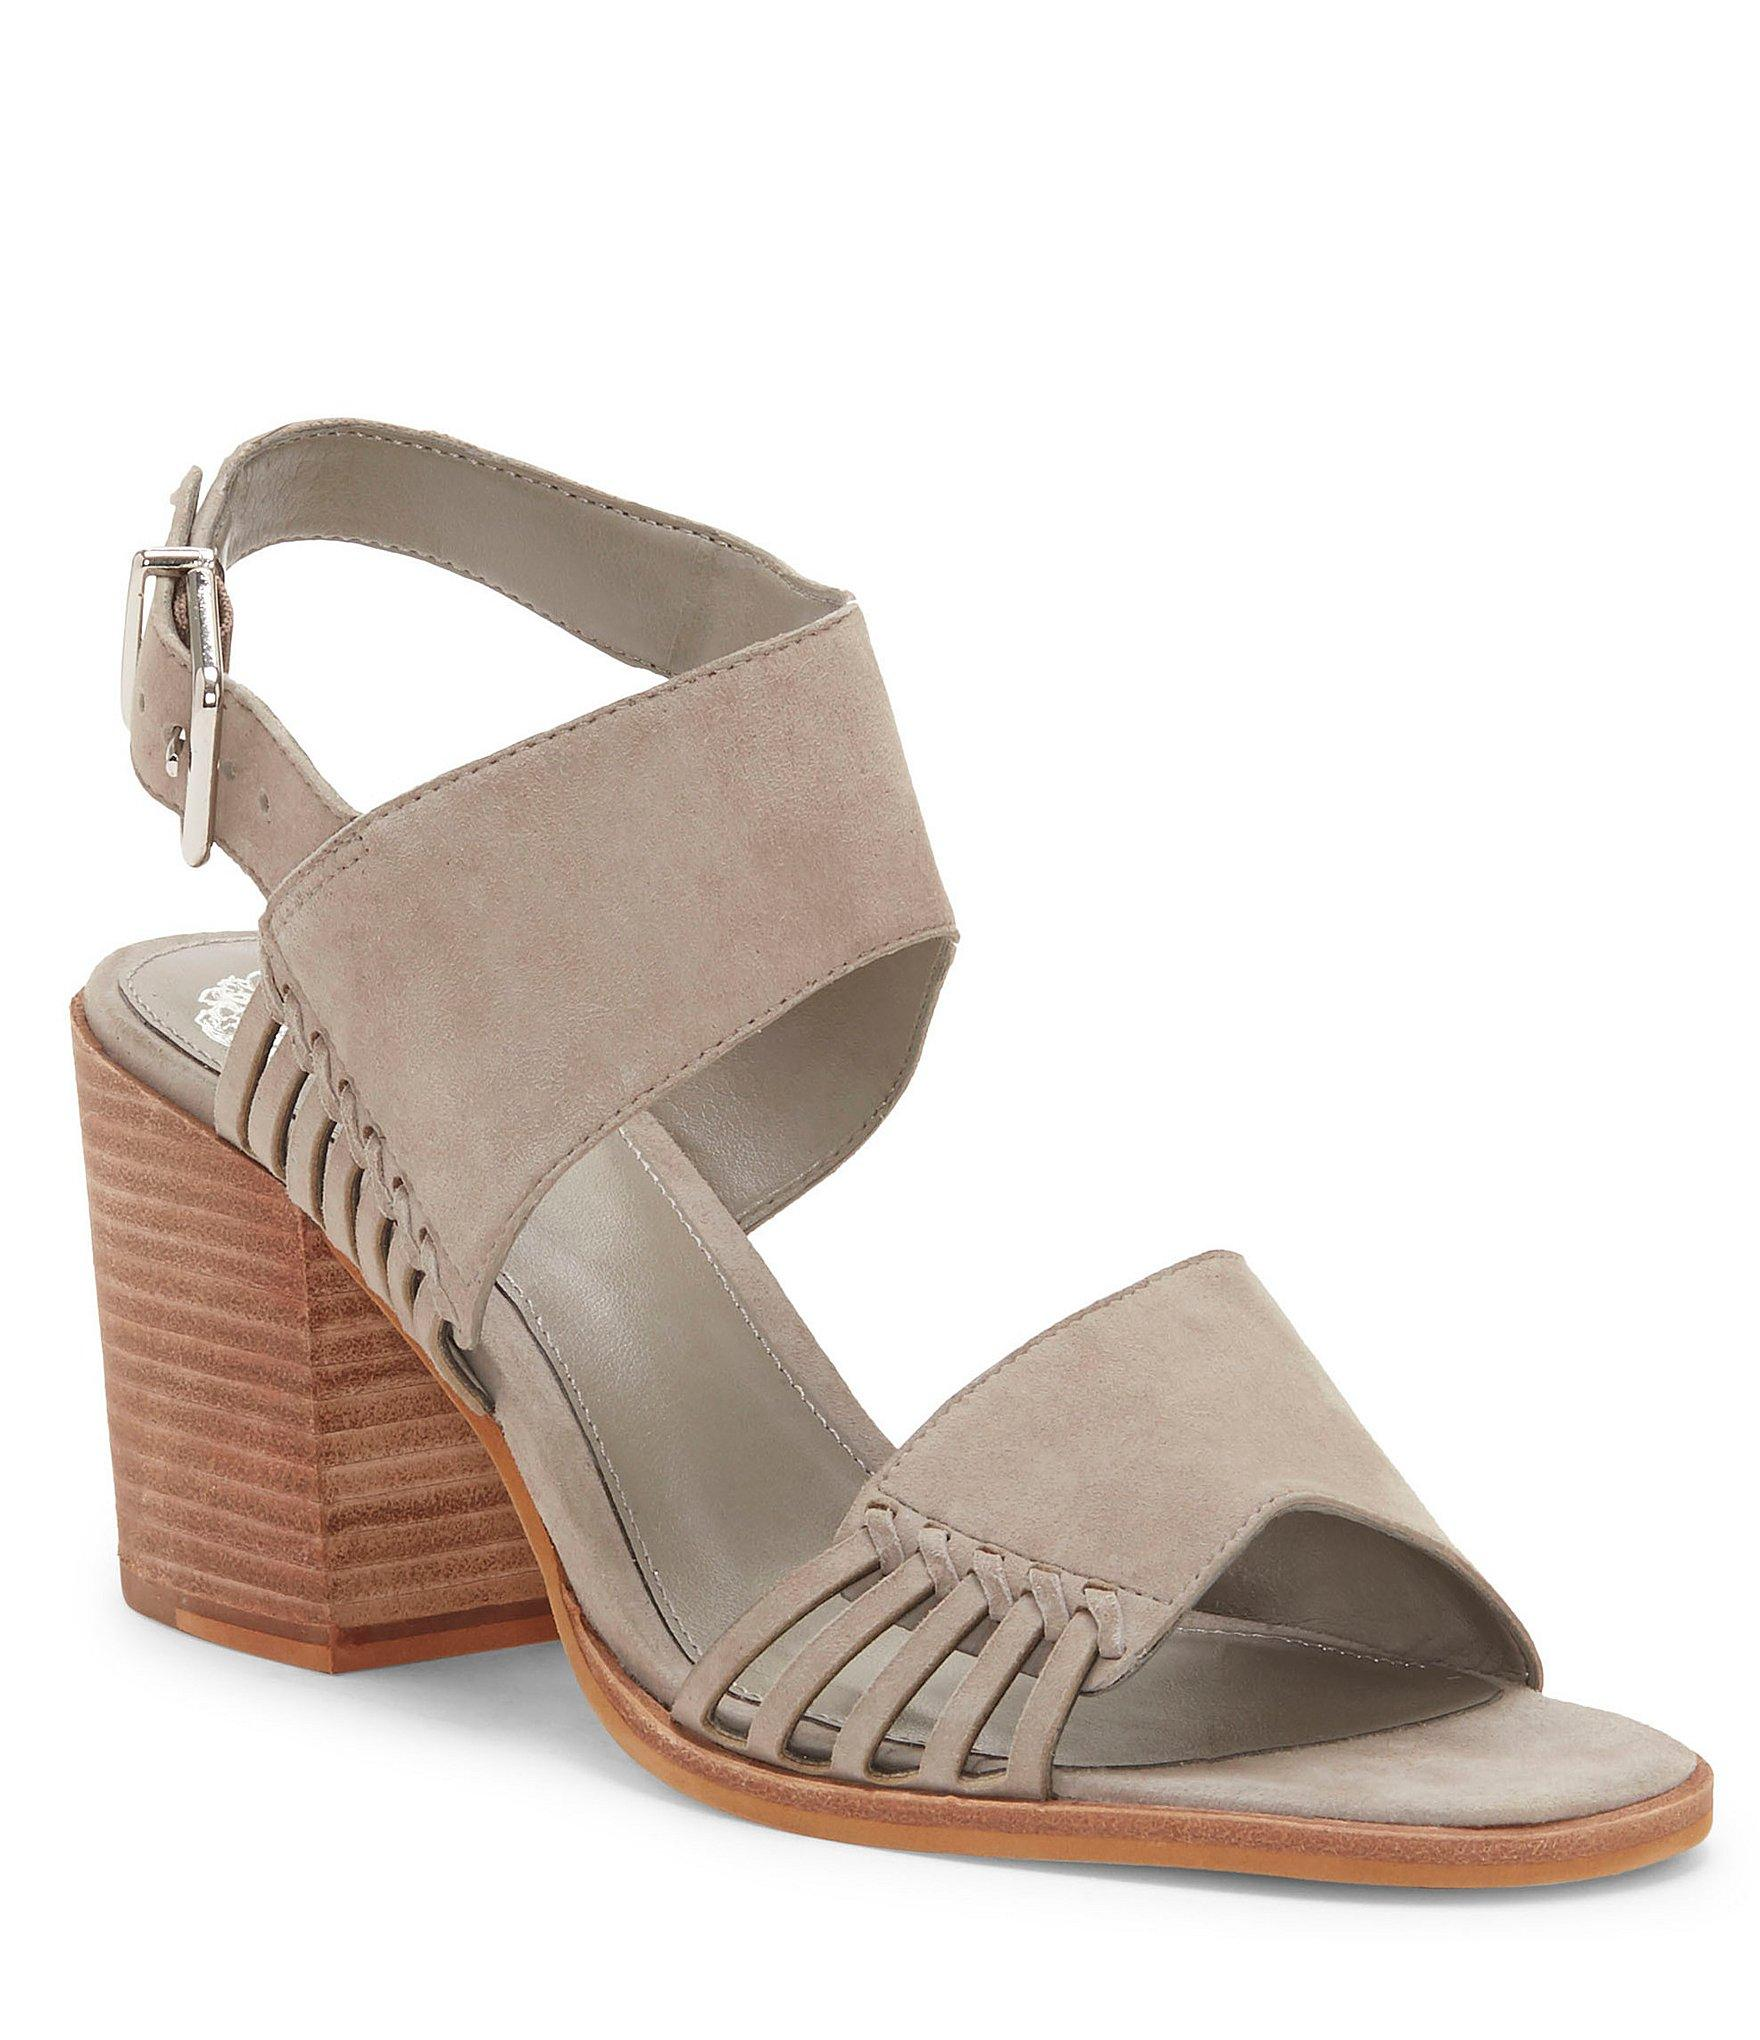 18a4ead8945ae Lyst - Vince Camuto Karmelo Suede Block Heel Sandals in Gray